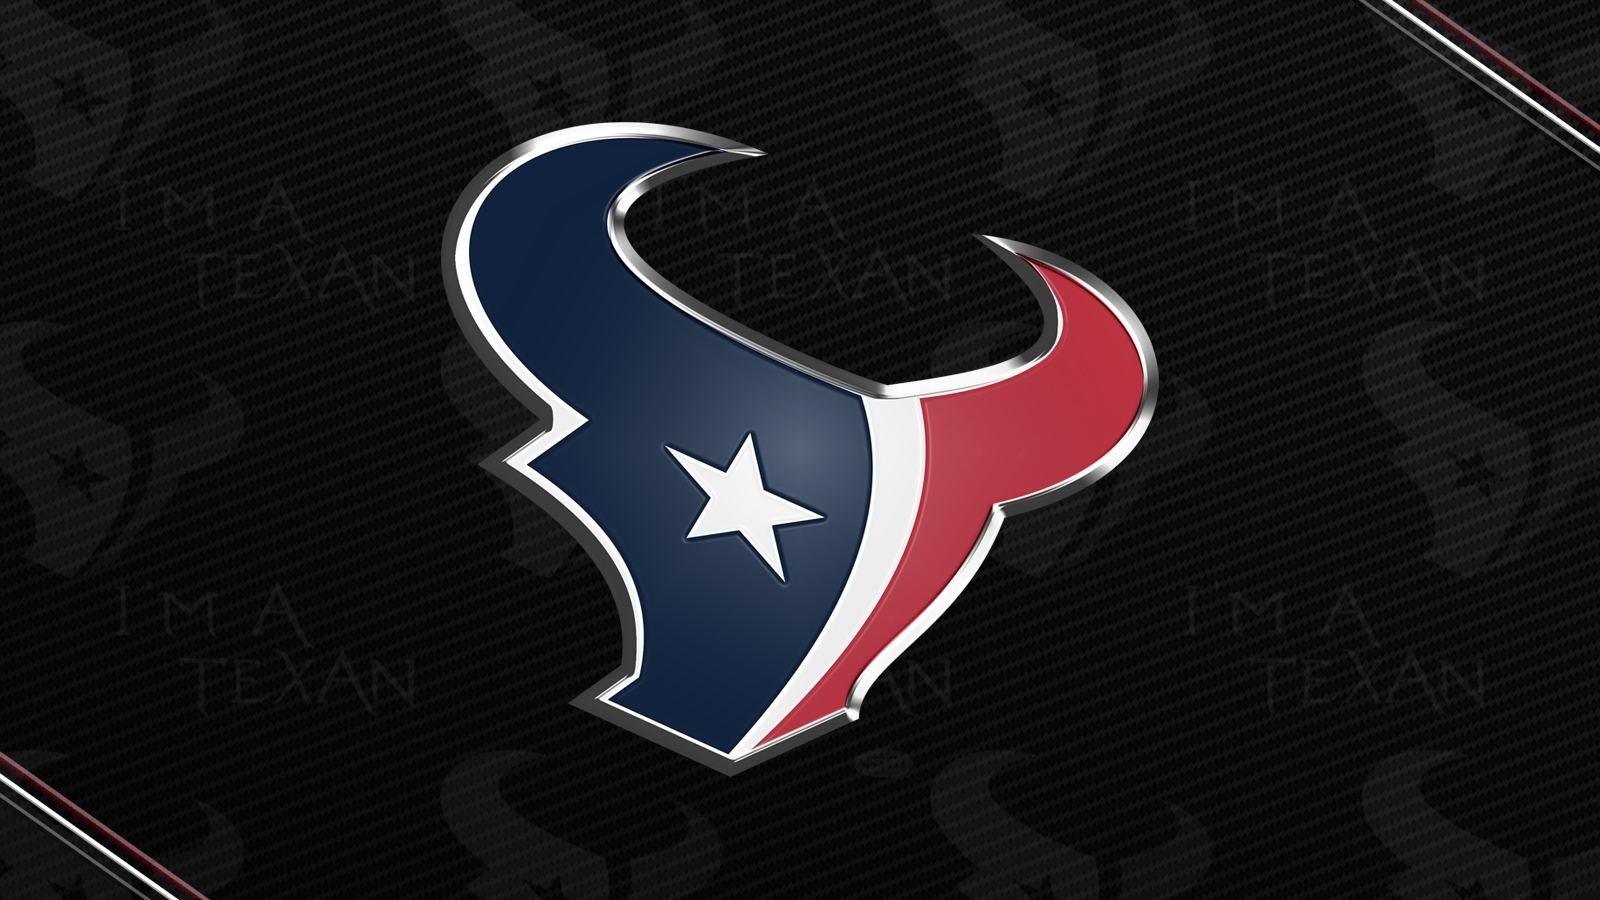 houston texans computer wallpaper 52917 1600x900 px ~ hdwallsource